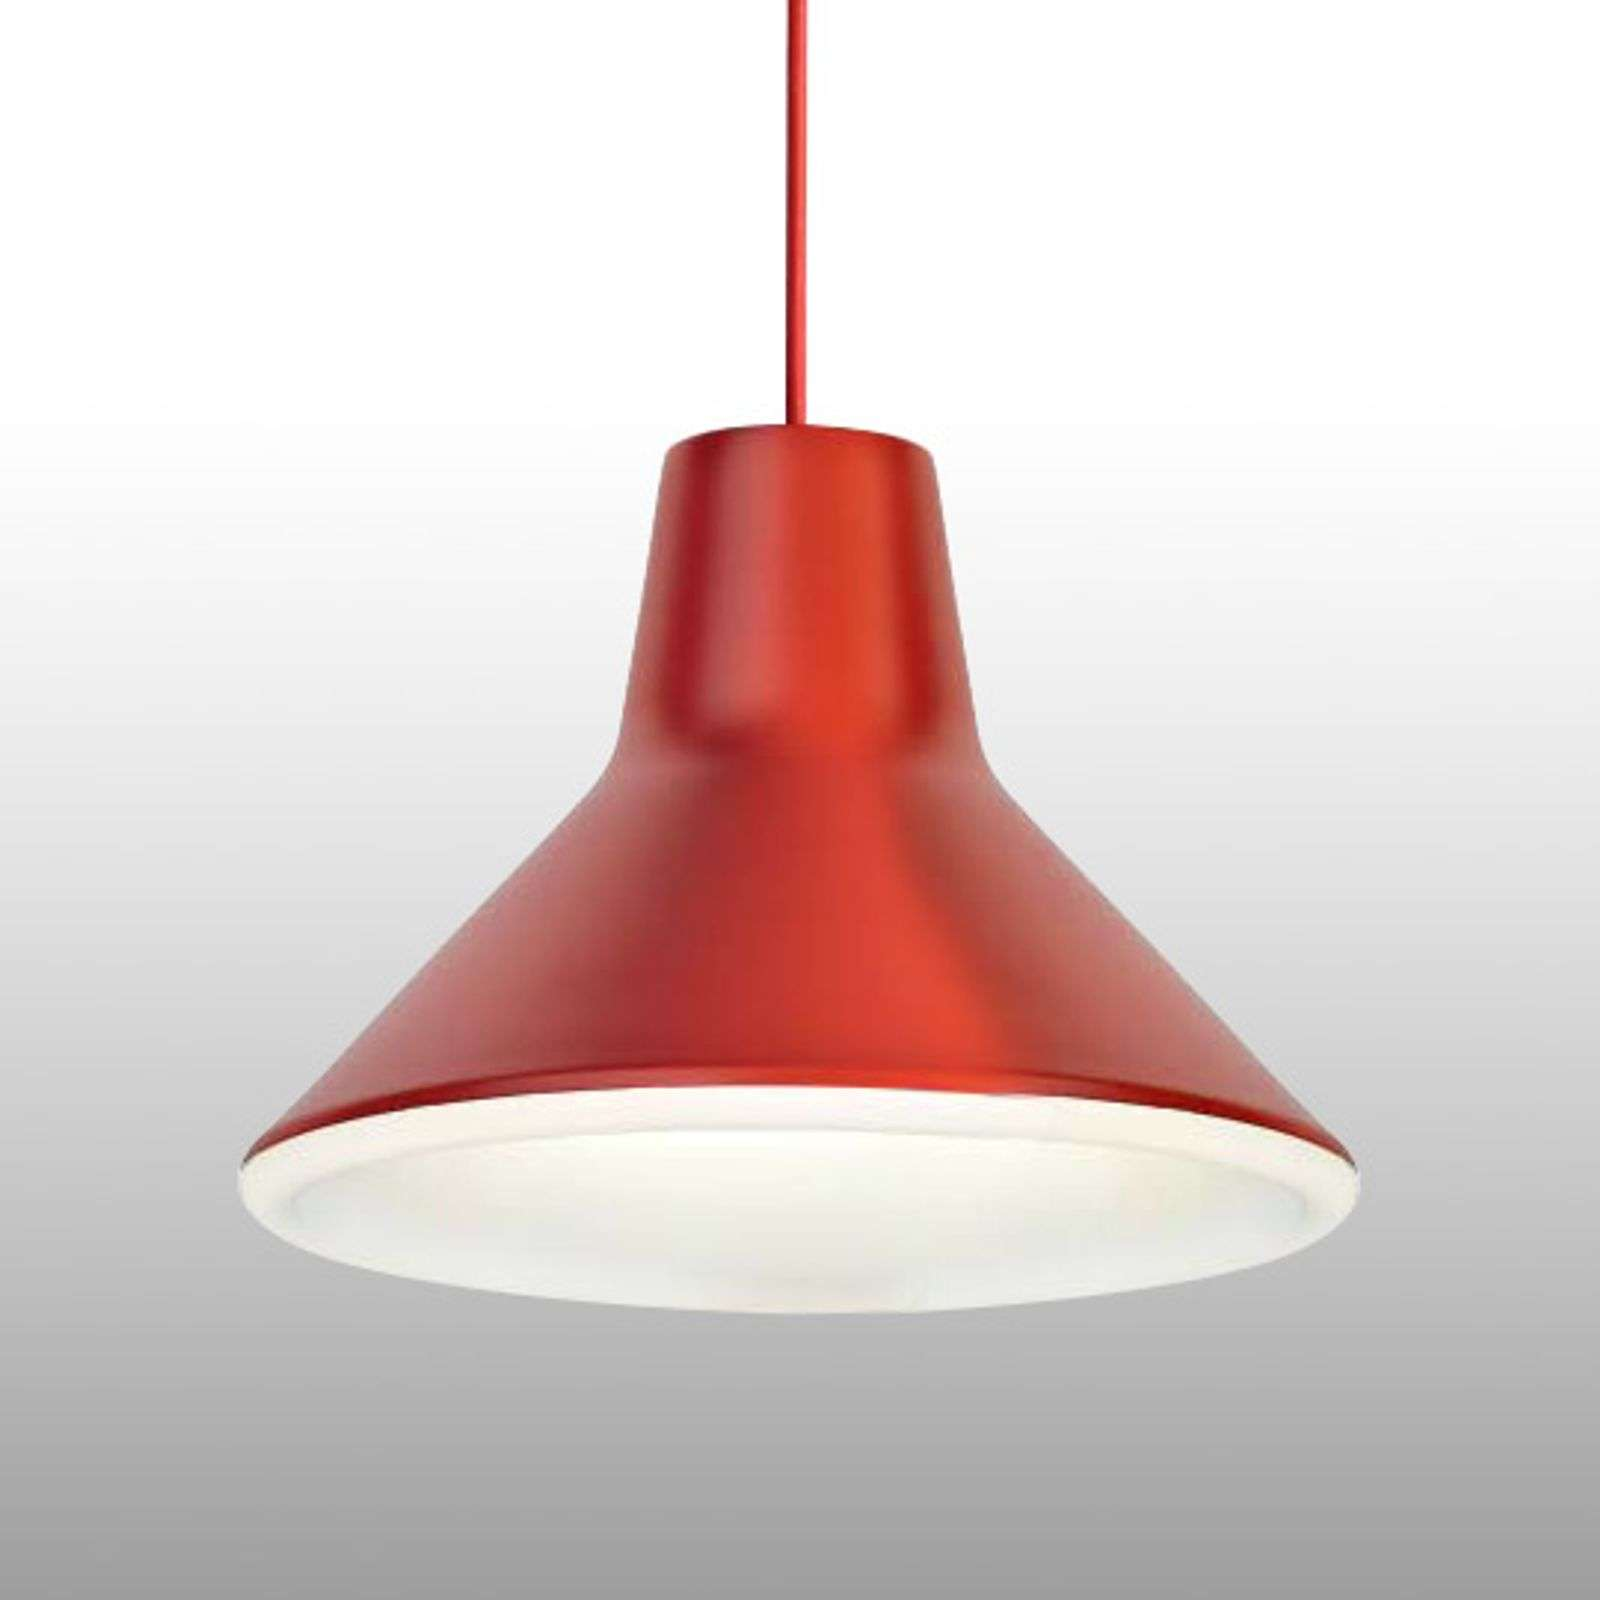 Suspension de designer Archetype LED, rouge